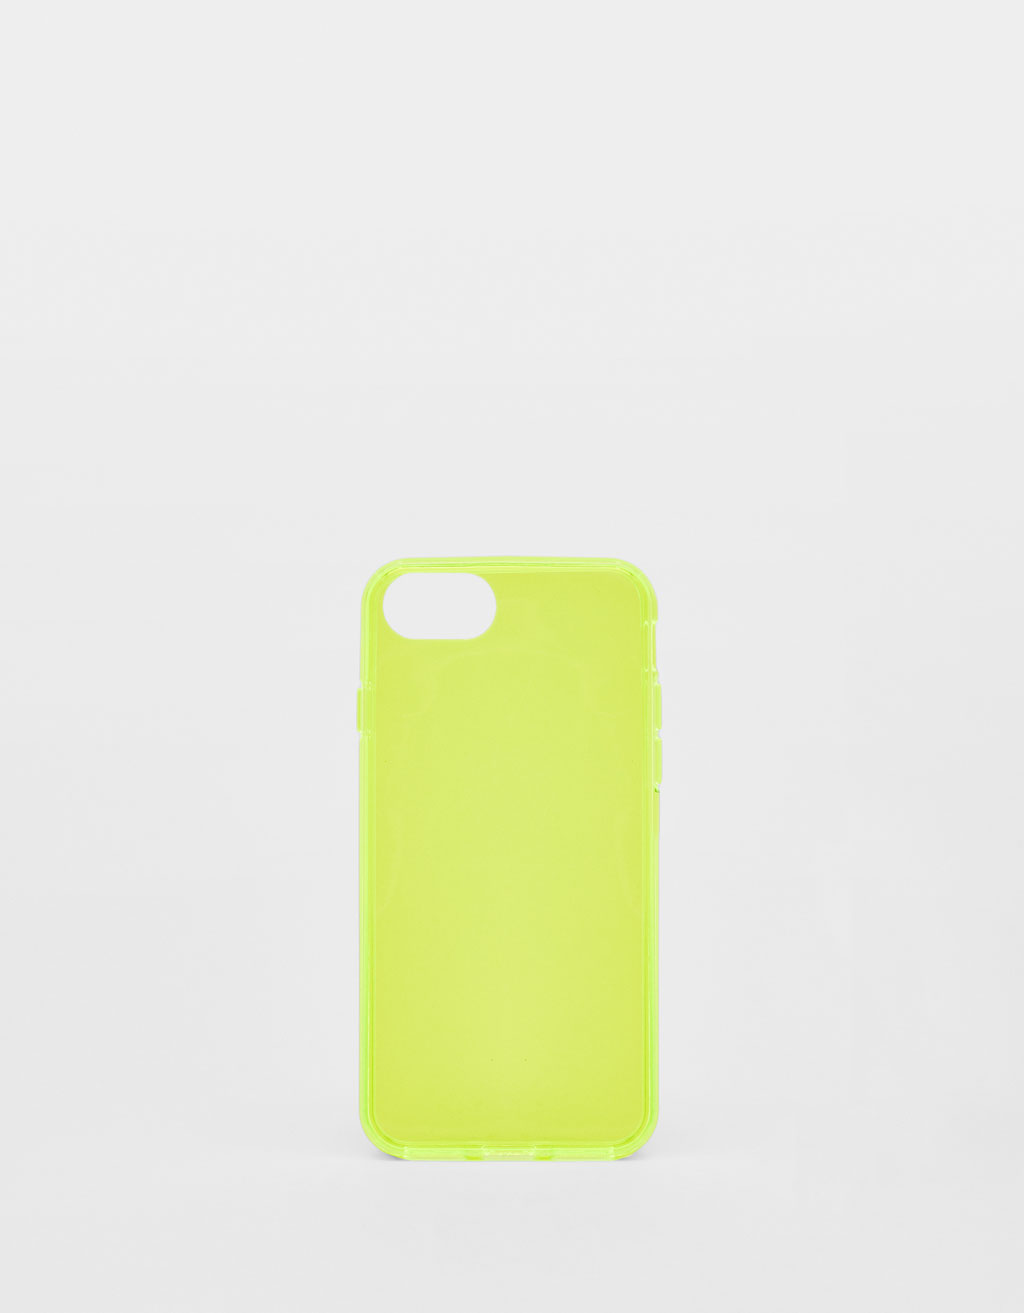 Transparent neon iPhone 6 / 6S / 7 / 8 case